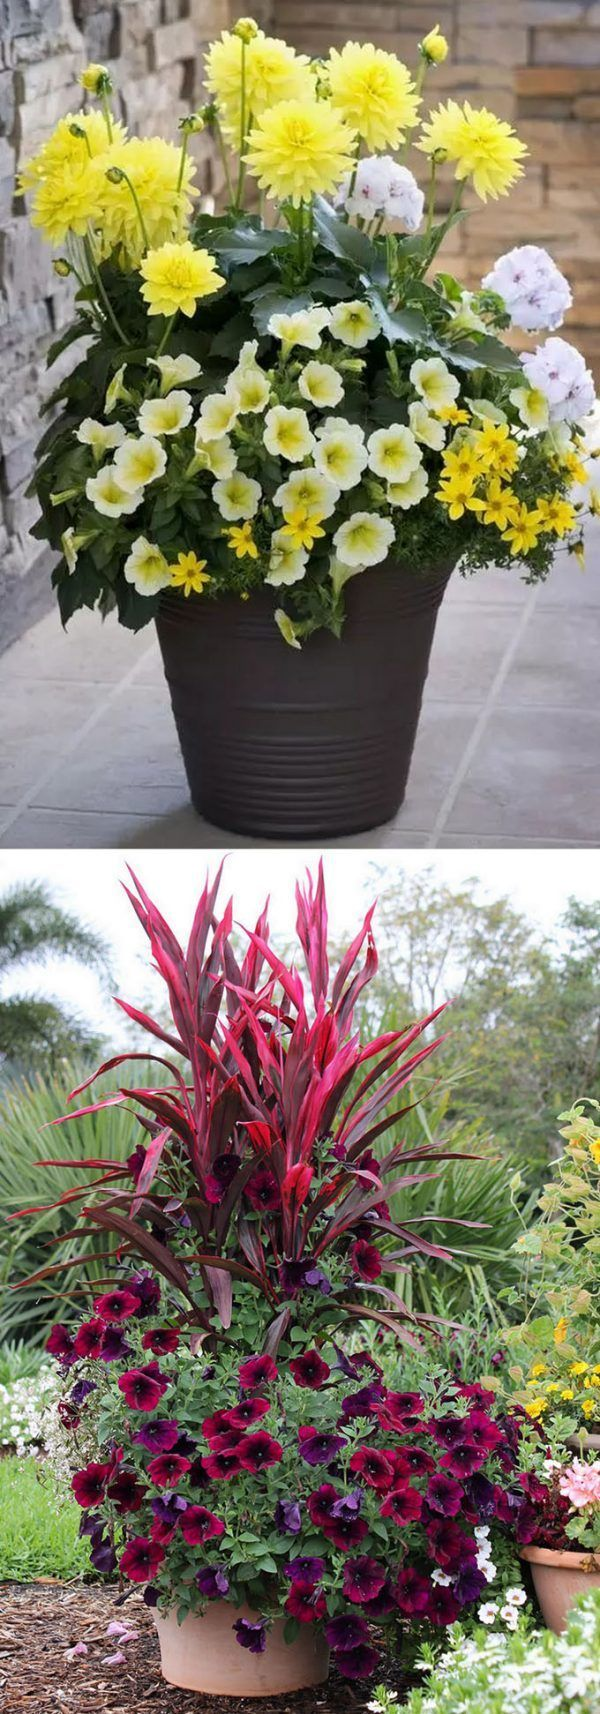 Garden Container Ideas 30 garden container ideas birdbath planter 24 Stunning Container Garden Planting Designs